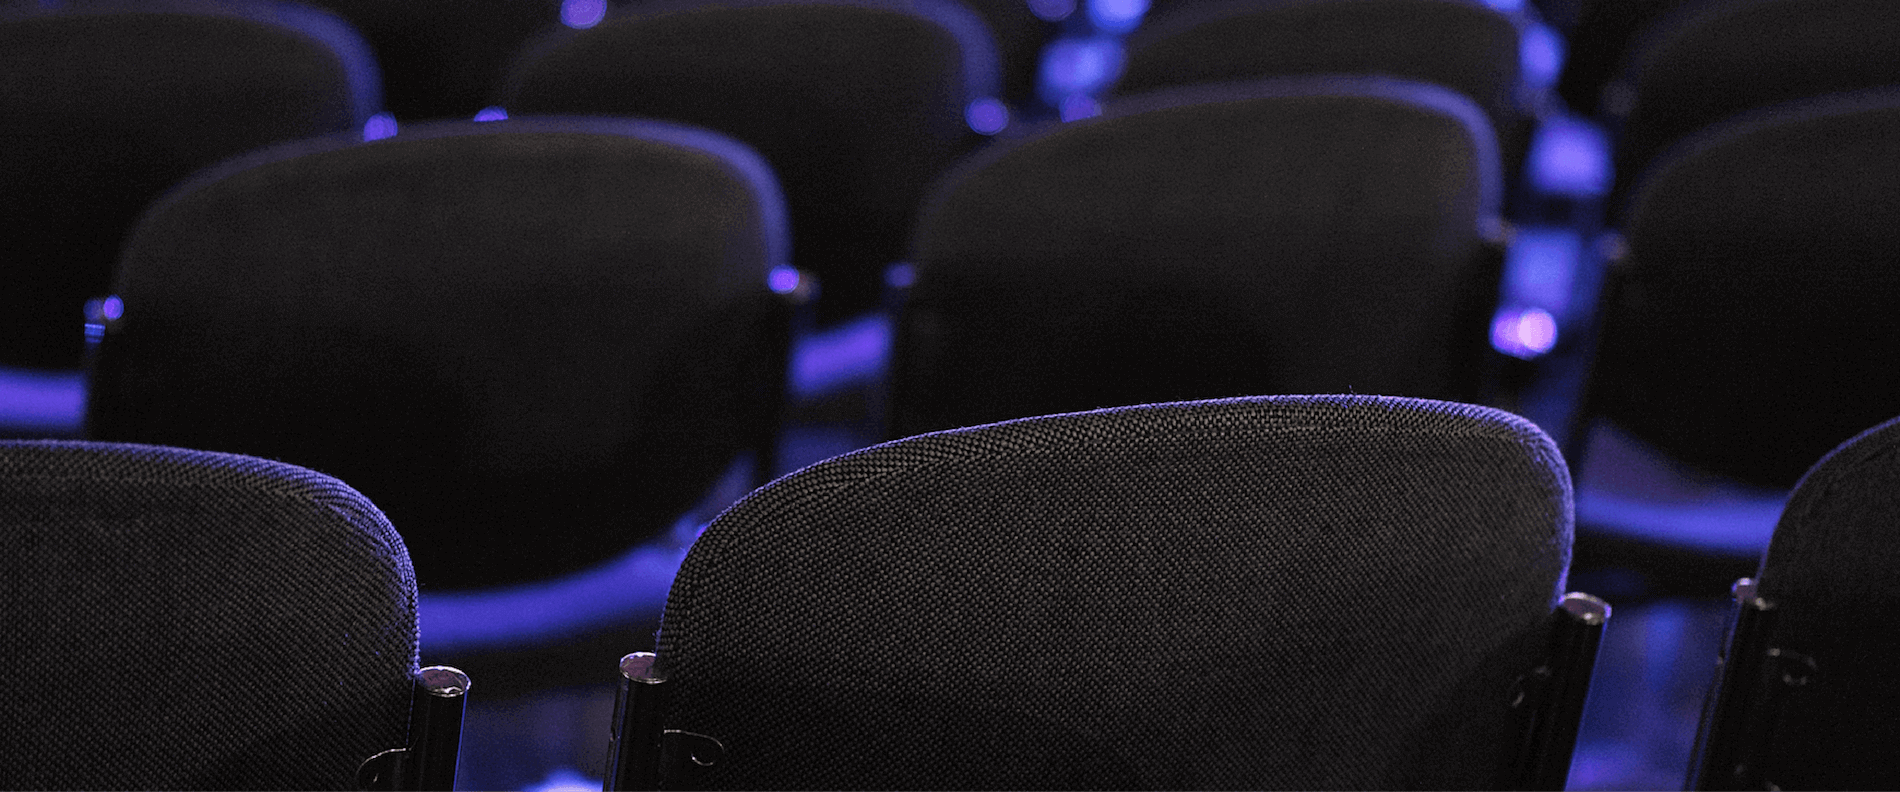 andrei-stratu-576842-unsplash_conference_chairs_1900x792.png